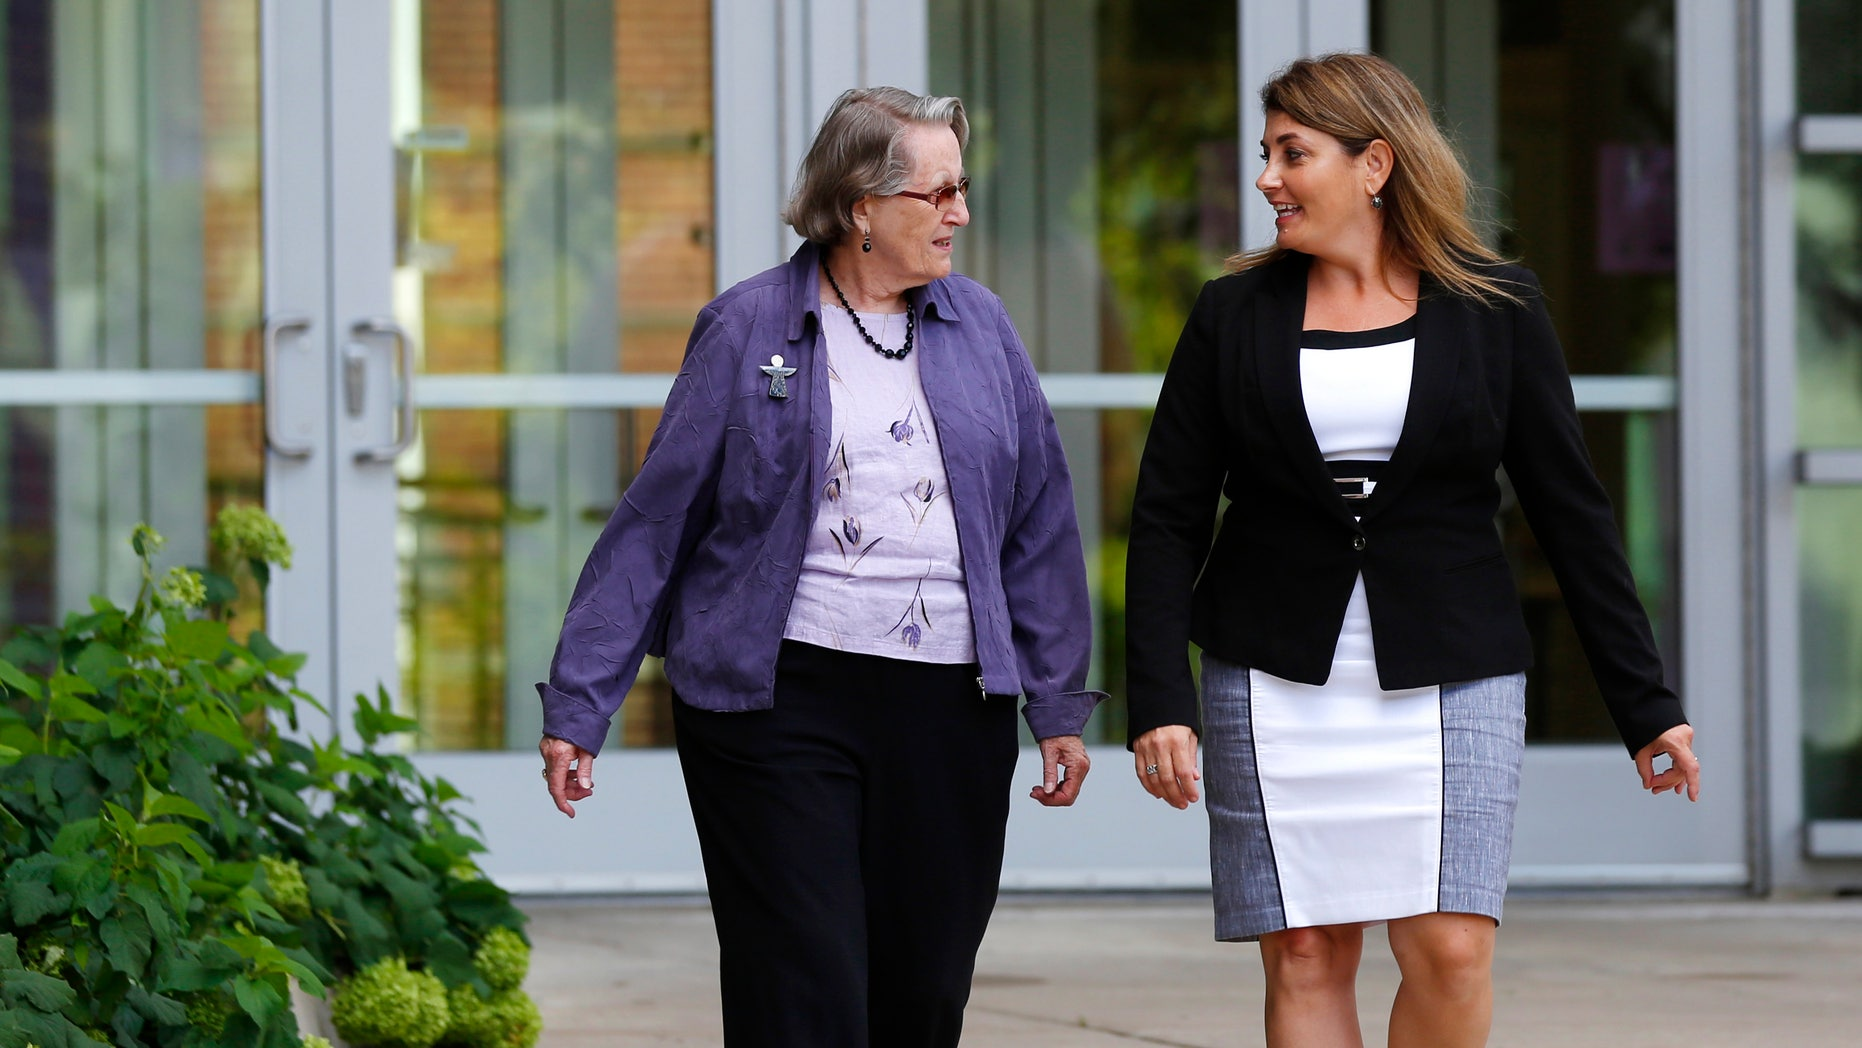 In this Aug. 11, 2016 photo, Angela McArthur, right, director of the Anatomy Bequest Program at the University of Minnesota Medical School, walks with Jean Larson, widow of a donor in Minneapolis. Once a relatively rare option, body donation has surged at medical schools, including the University of Minnesota. The increase has helped provide cadavers for dissection by first-year medical students, and for research and surgical training.